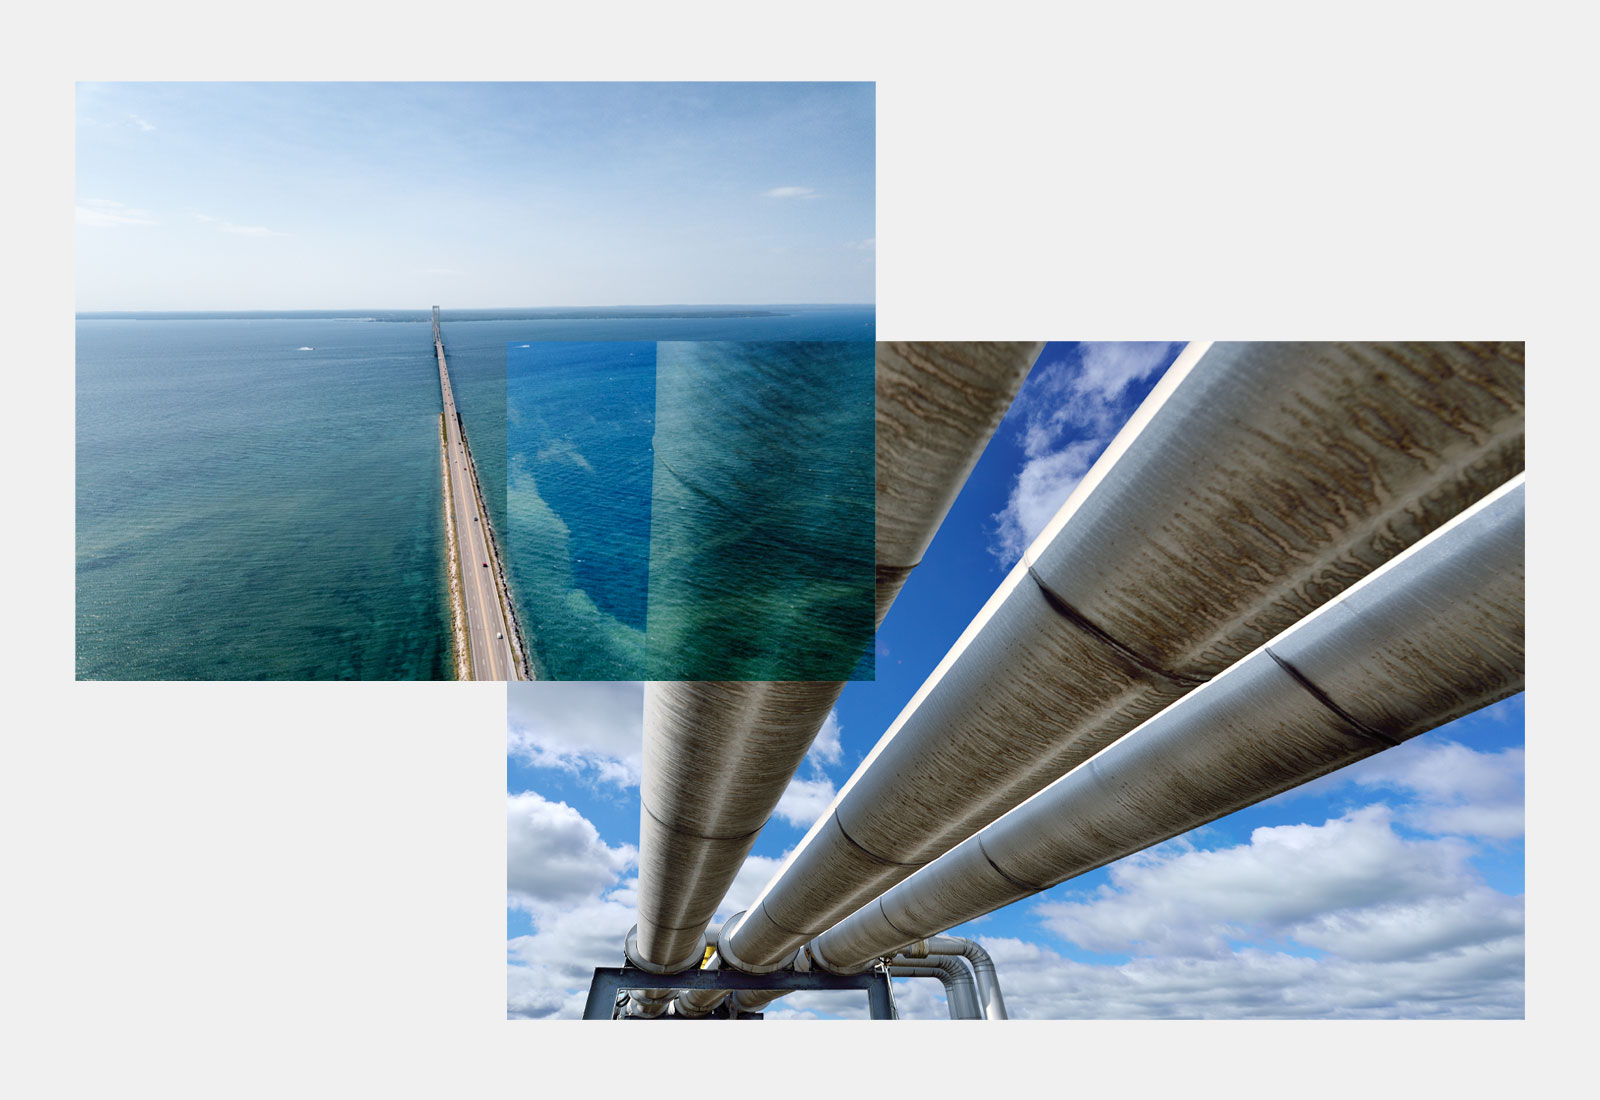 Collage: aerial photo of Mackinac Bridge and Lake Huron overlaid on a photo of an oil pipeline